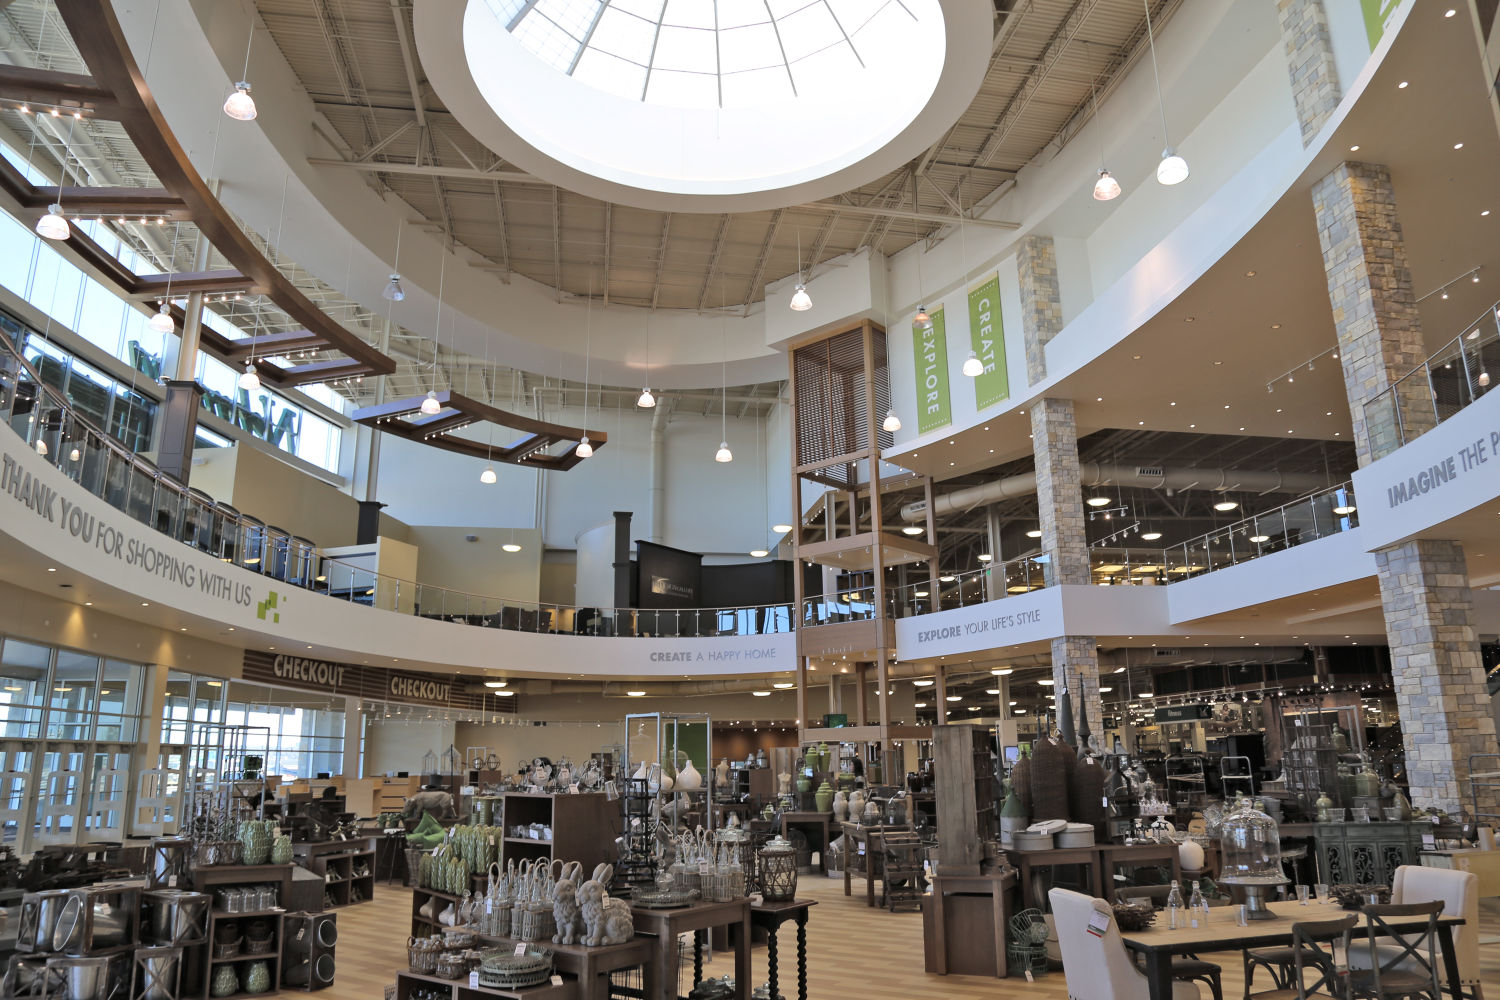 A Mart Furniture Store Well Prepared In Texas Nebraska Furniture Mart Aims To Avoid